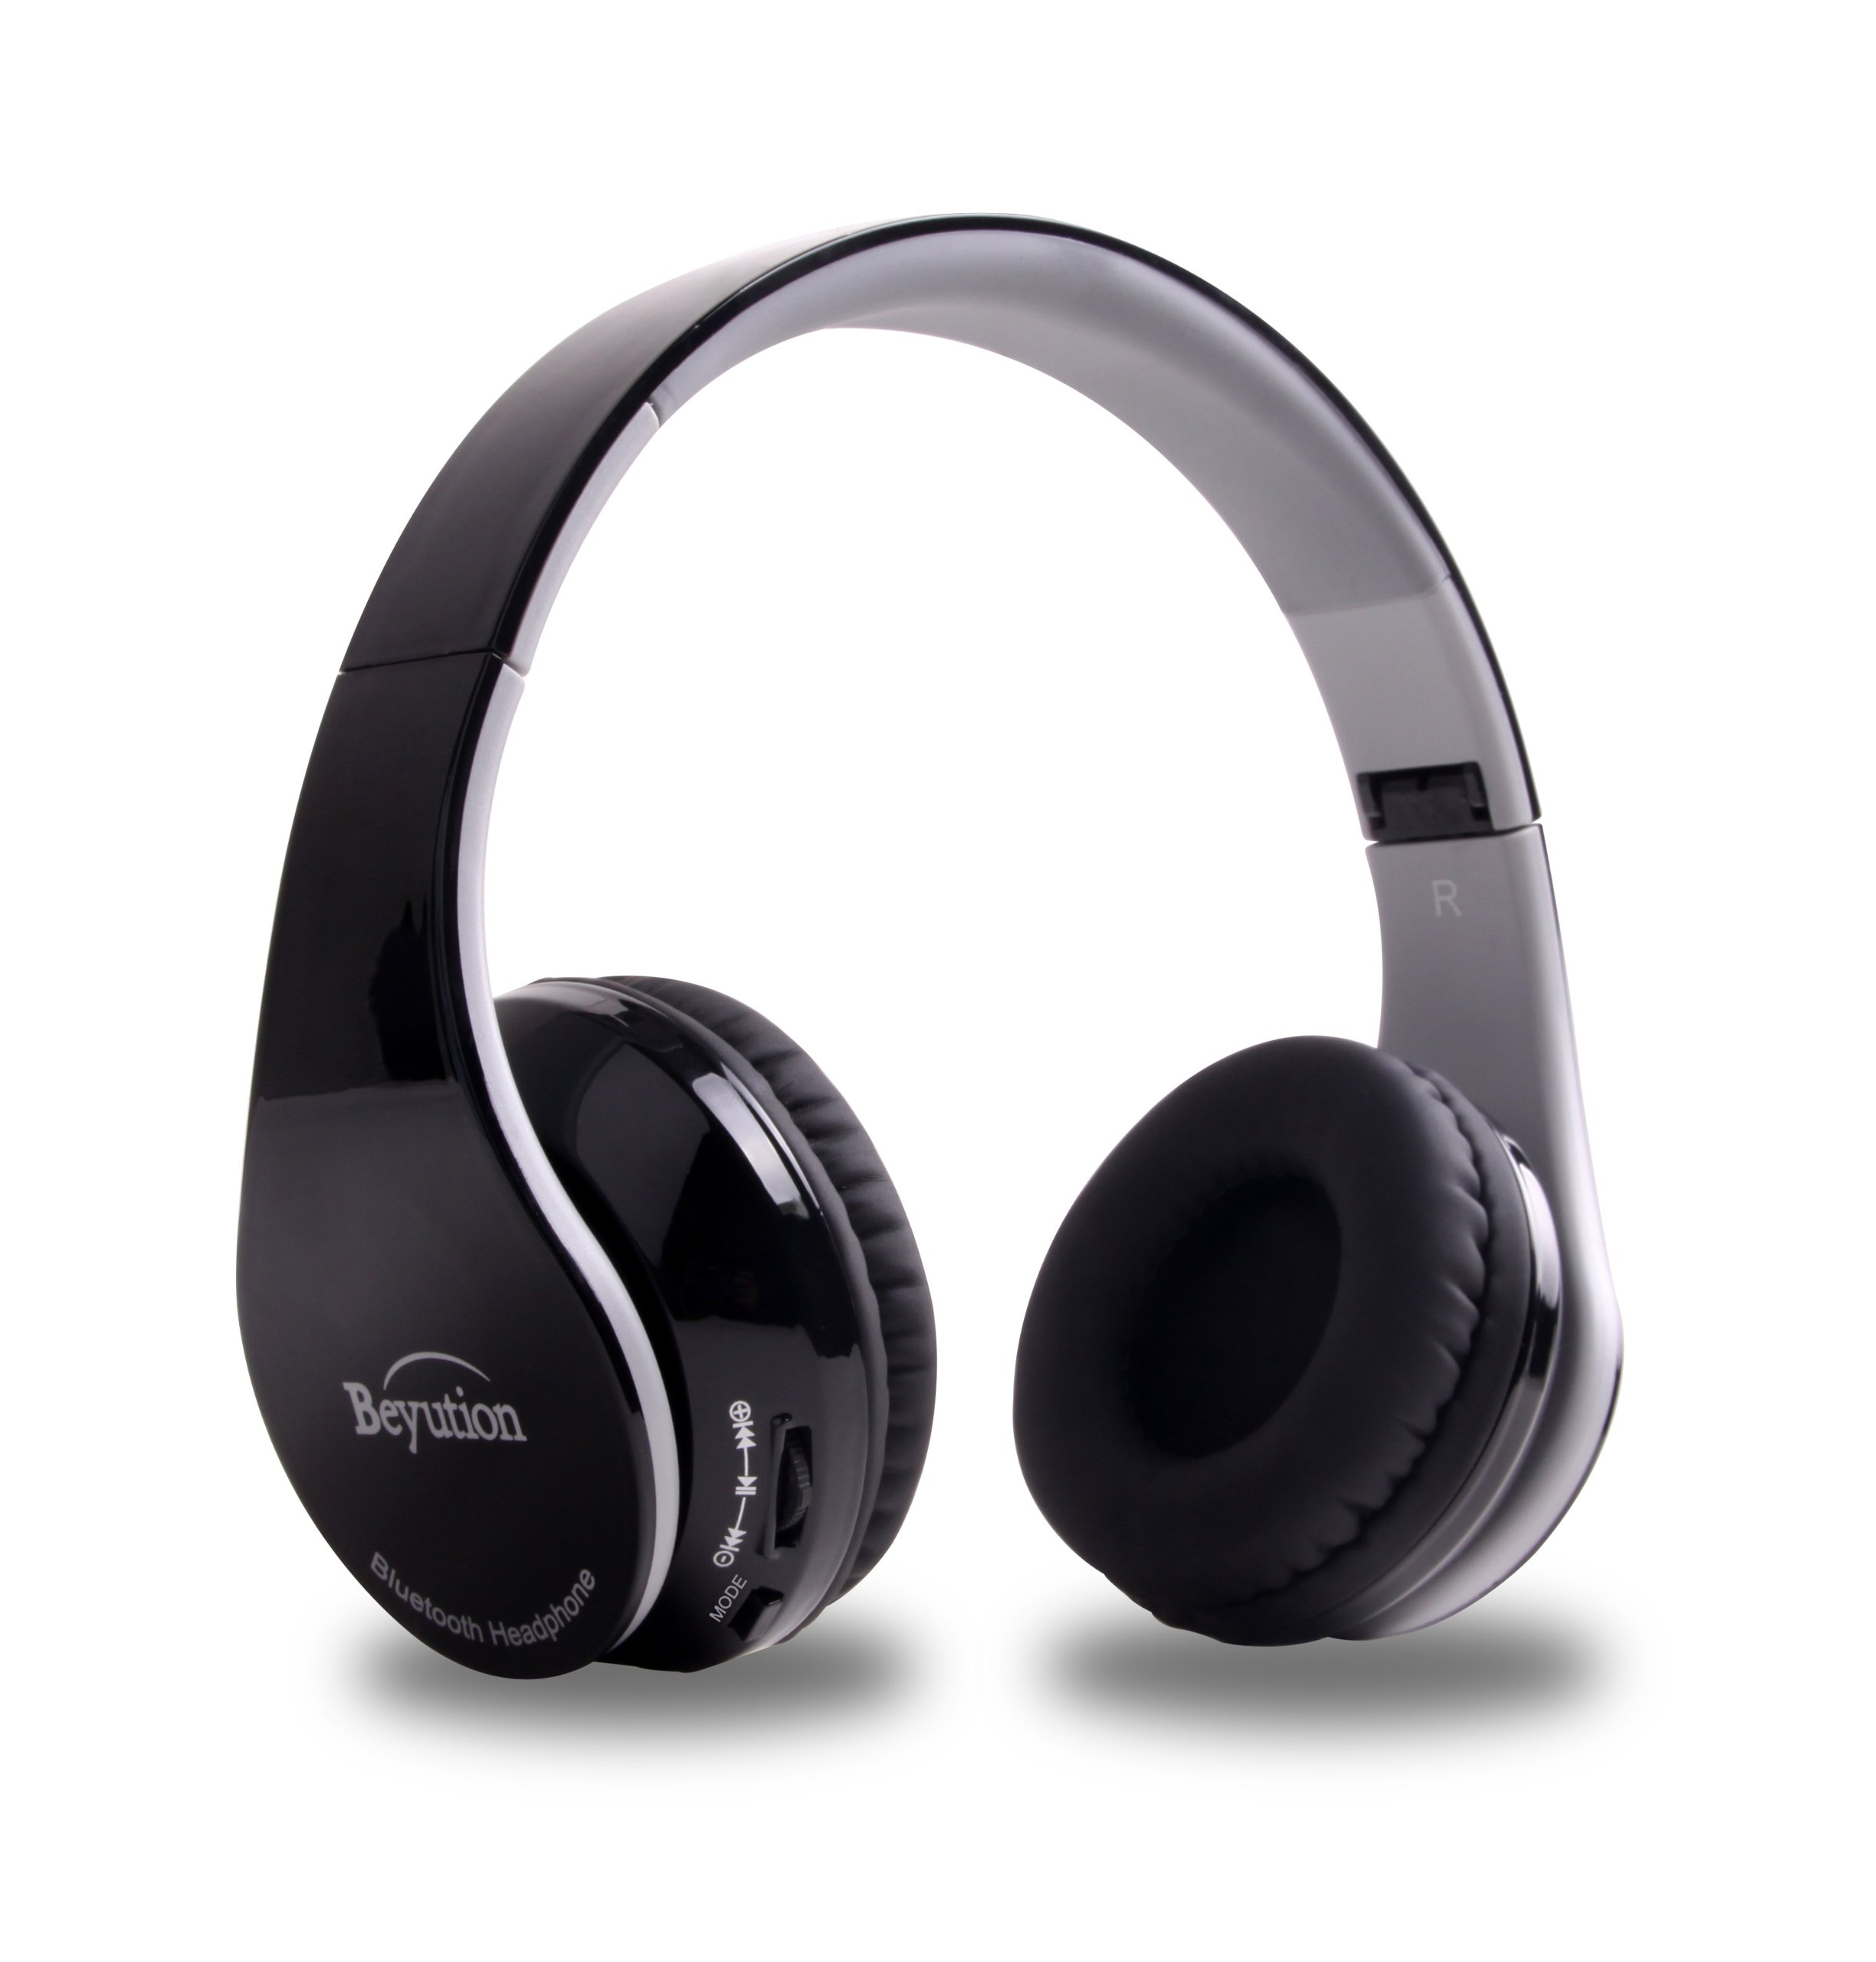 837892fd714 Details about Wireless Bluetooth 4.1 Stereo Headphones With Mic Audifonos  Inalambricos Black